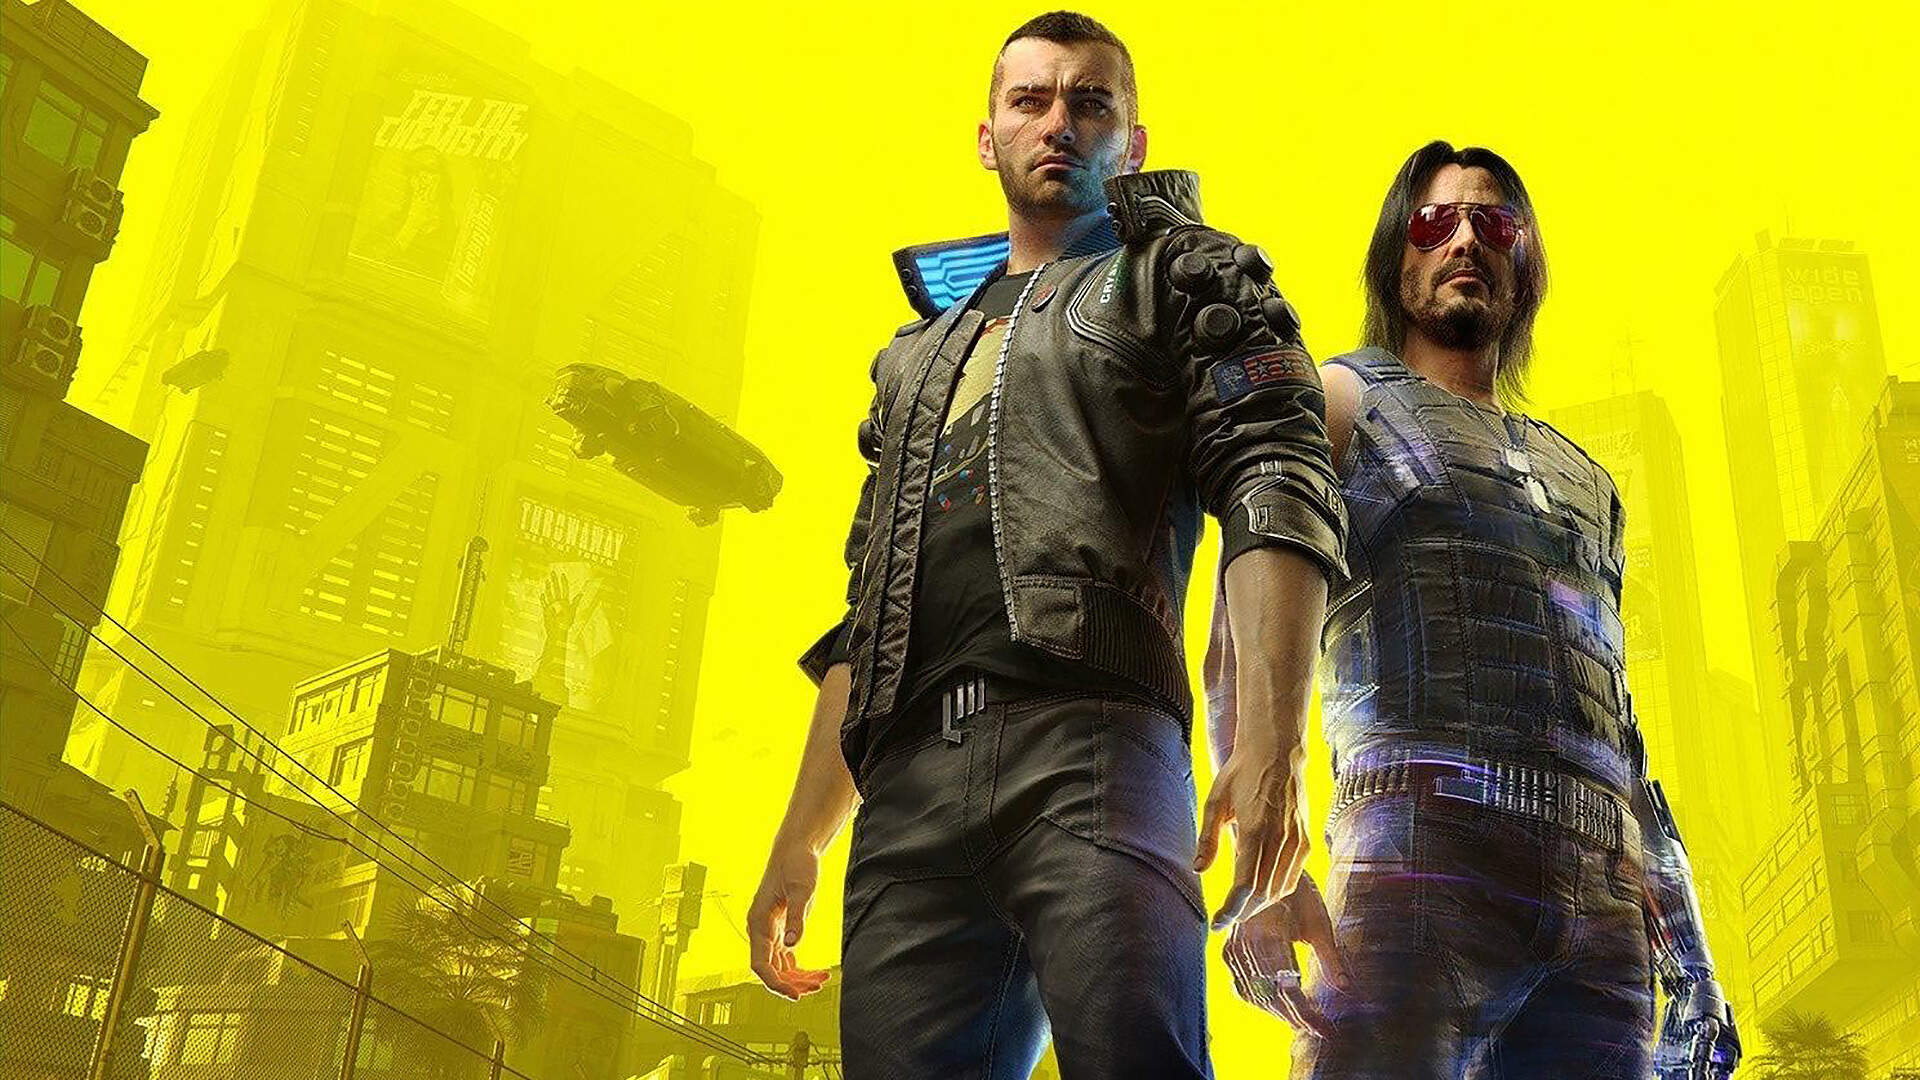 Cyberpunk 2077 Review: Death by a Thousand Cyber-Cuts